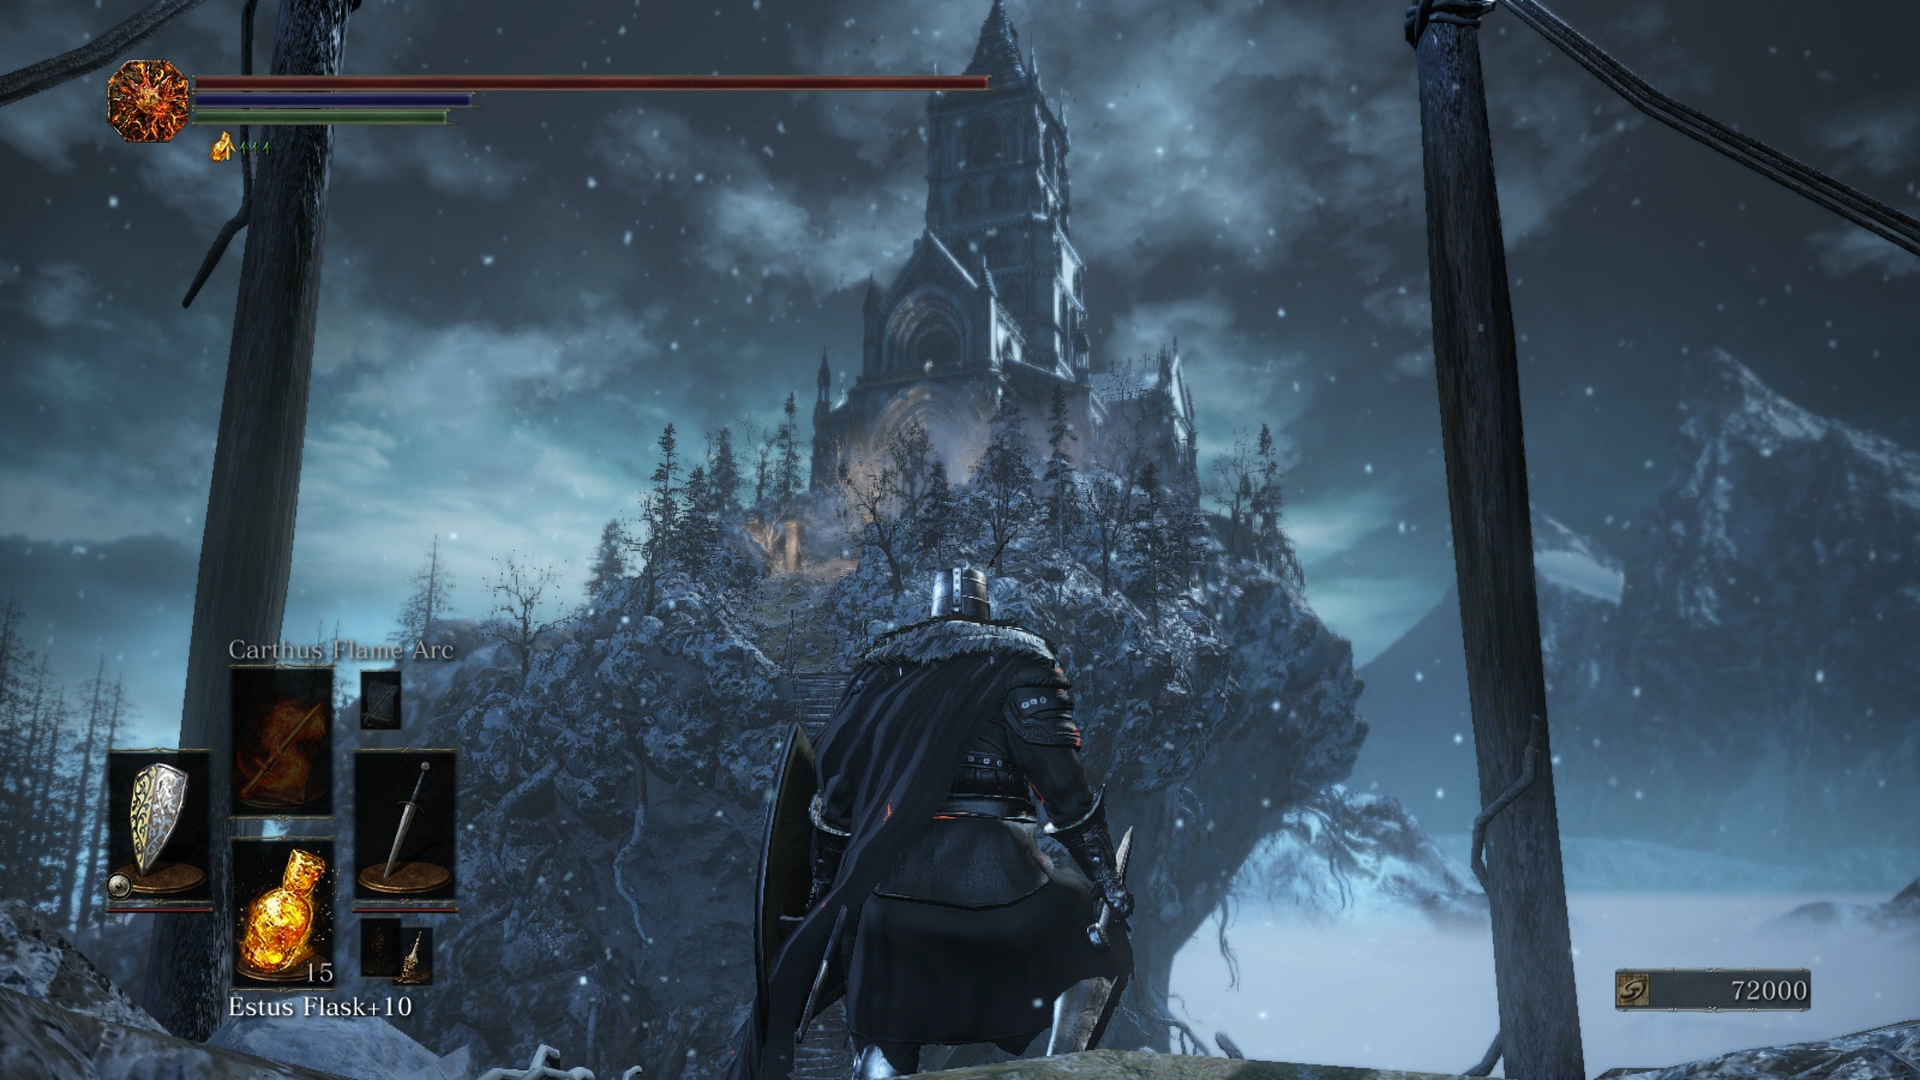 Locate Ariandel's Chapel in order to gain access to the Champion's Gravetender fight